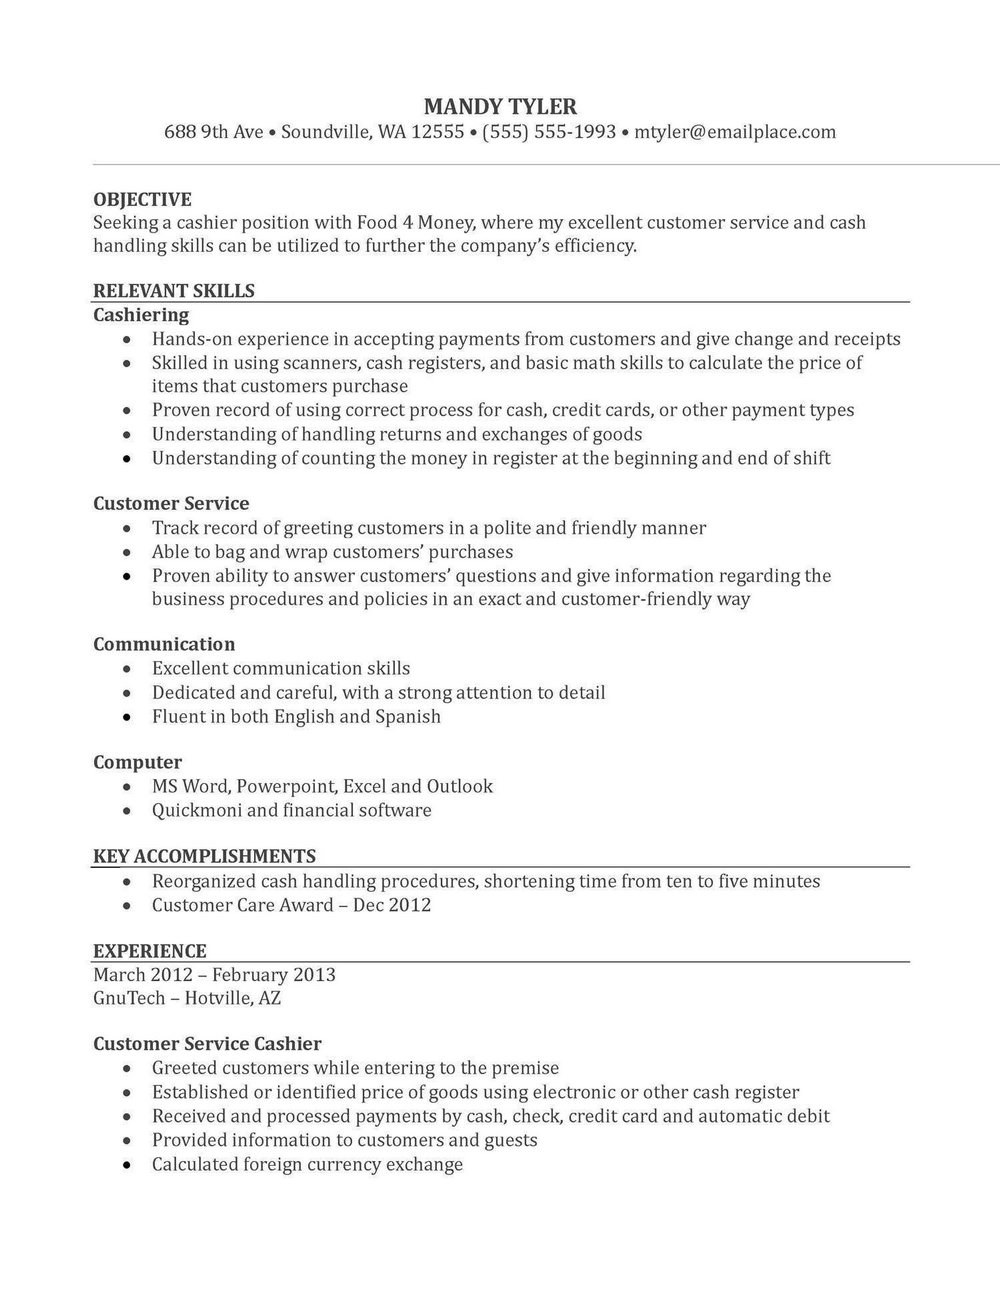 Resume Examples Pdf Free Download